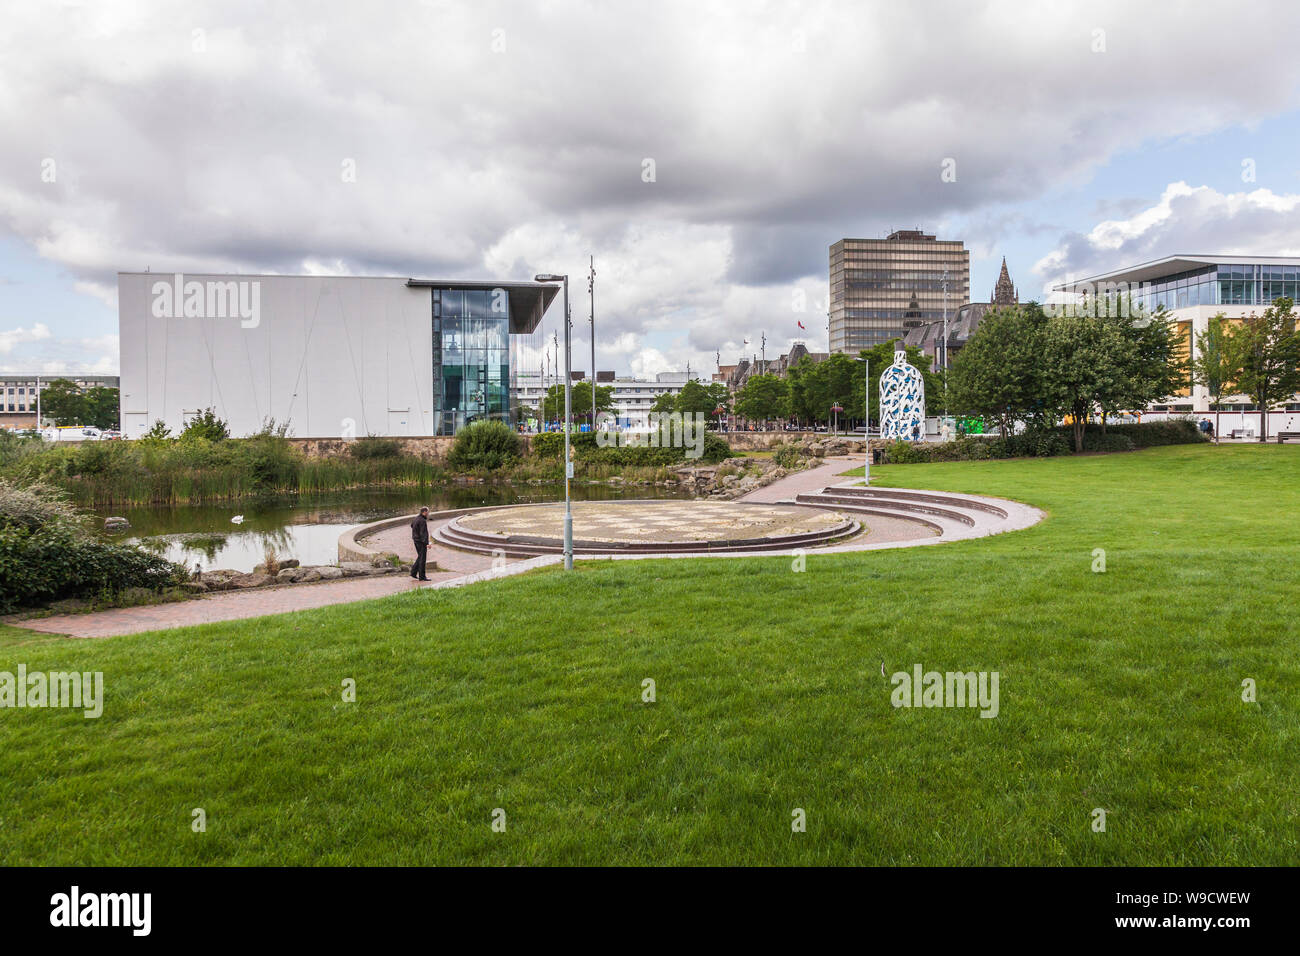 The MIMA building and the Bottle of Notes statue in Middlesbrough,England,UK Stock Photo